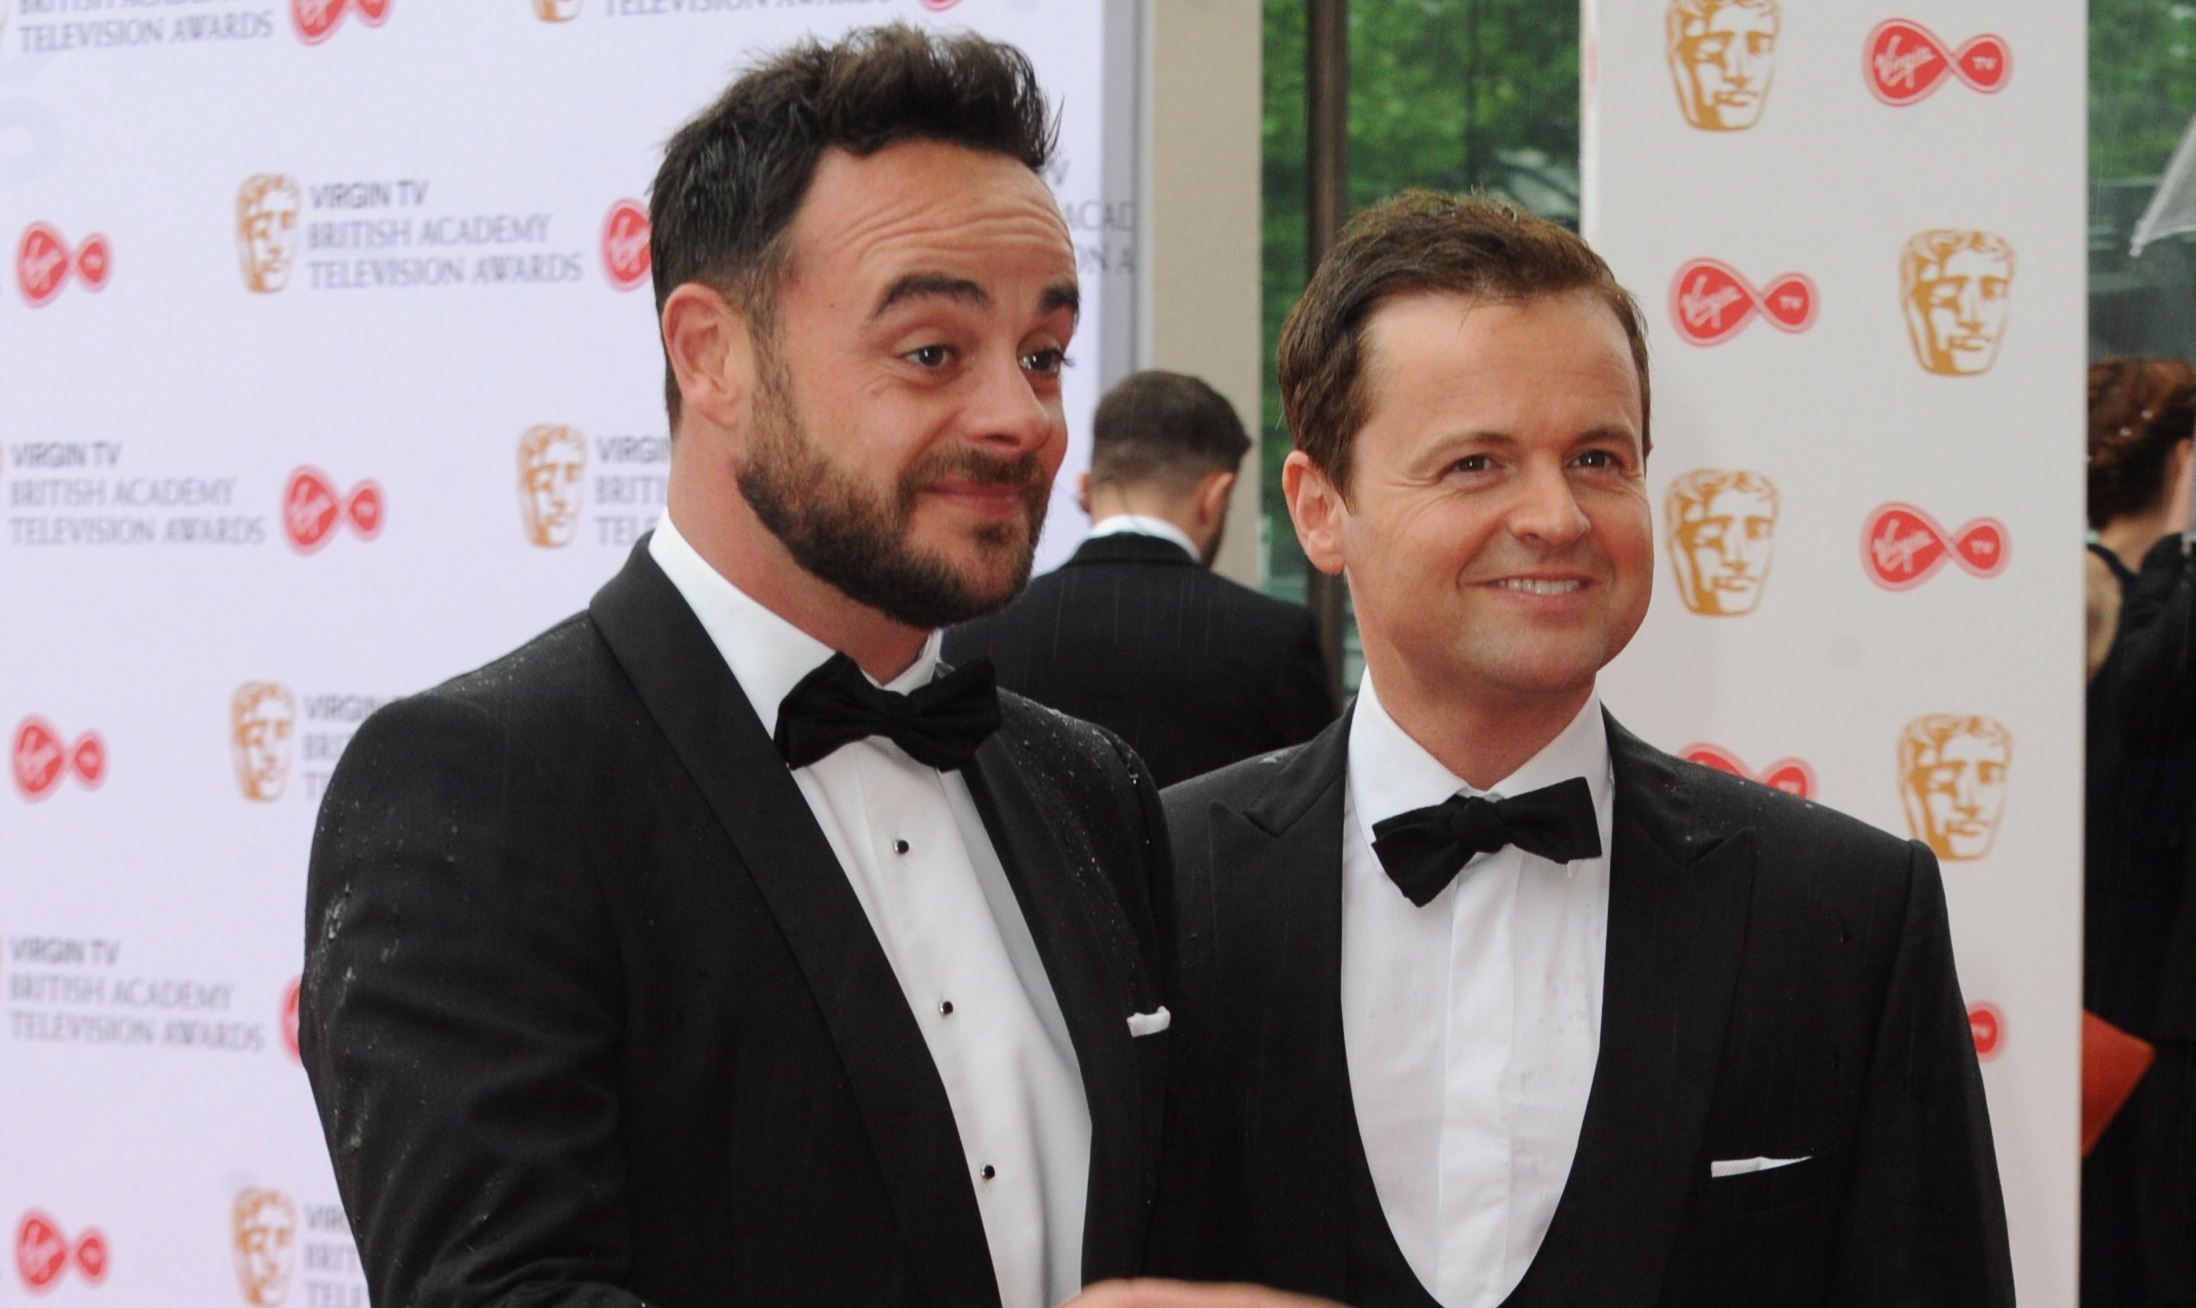 Dec Donnelly speaks out on Ant McPartlin's Britain's Got Talent 'return'